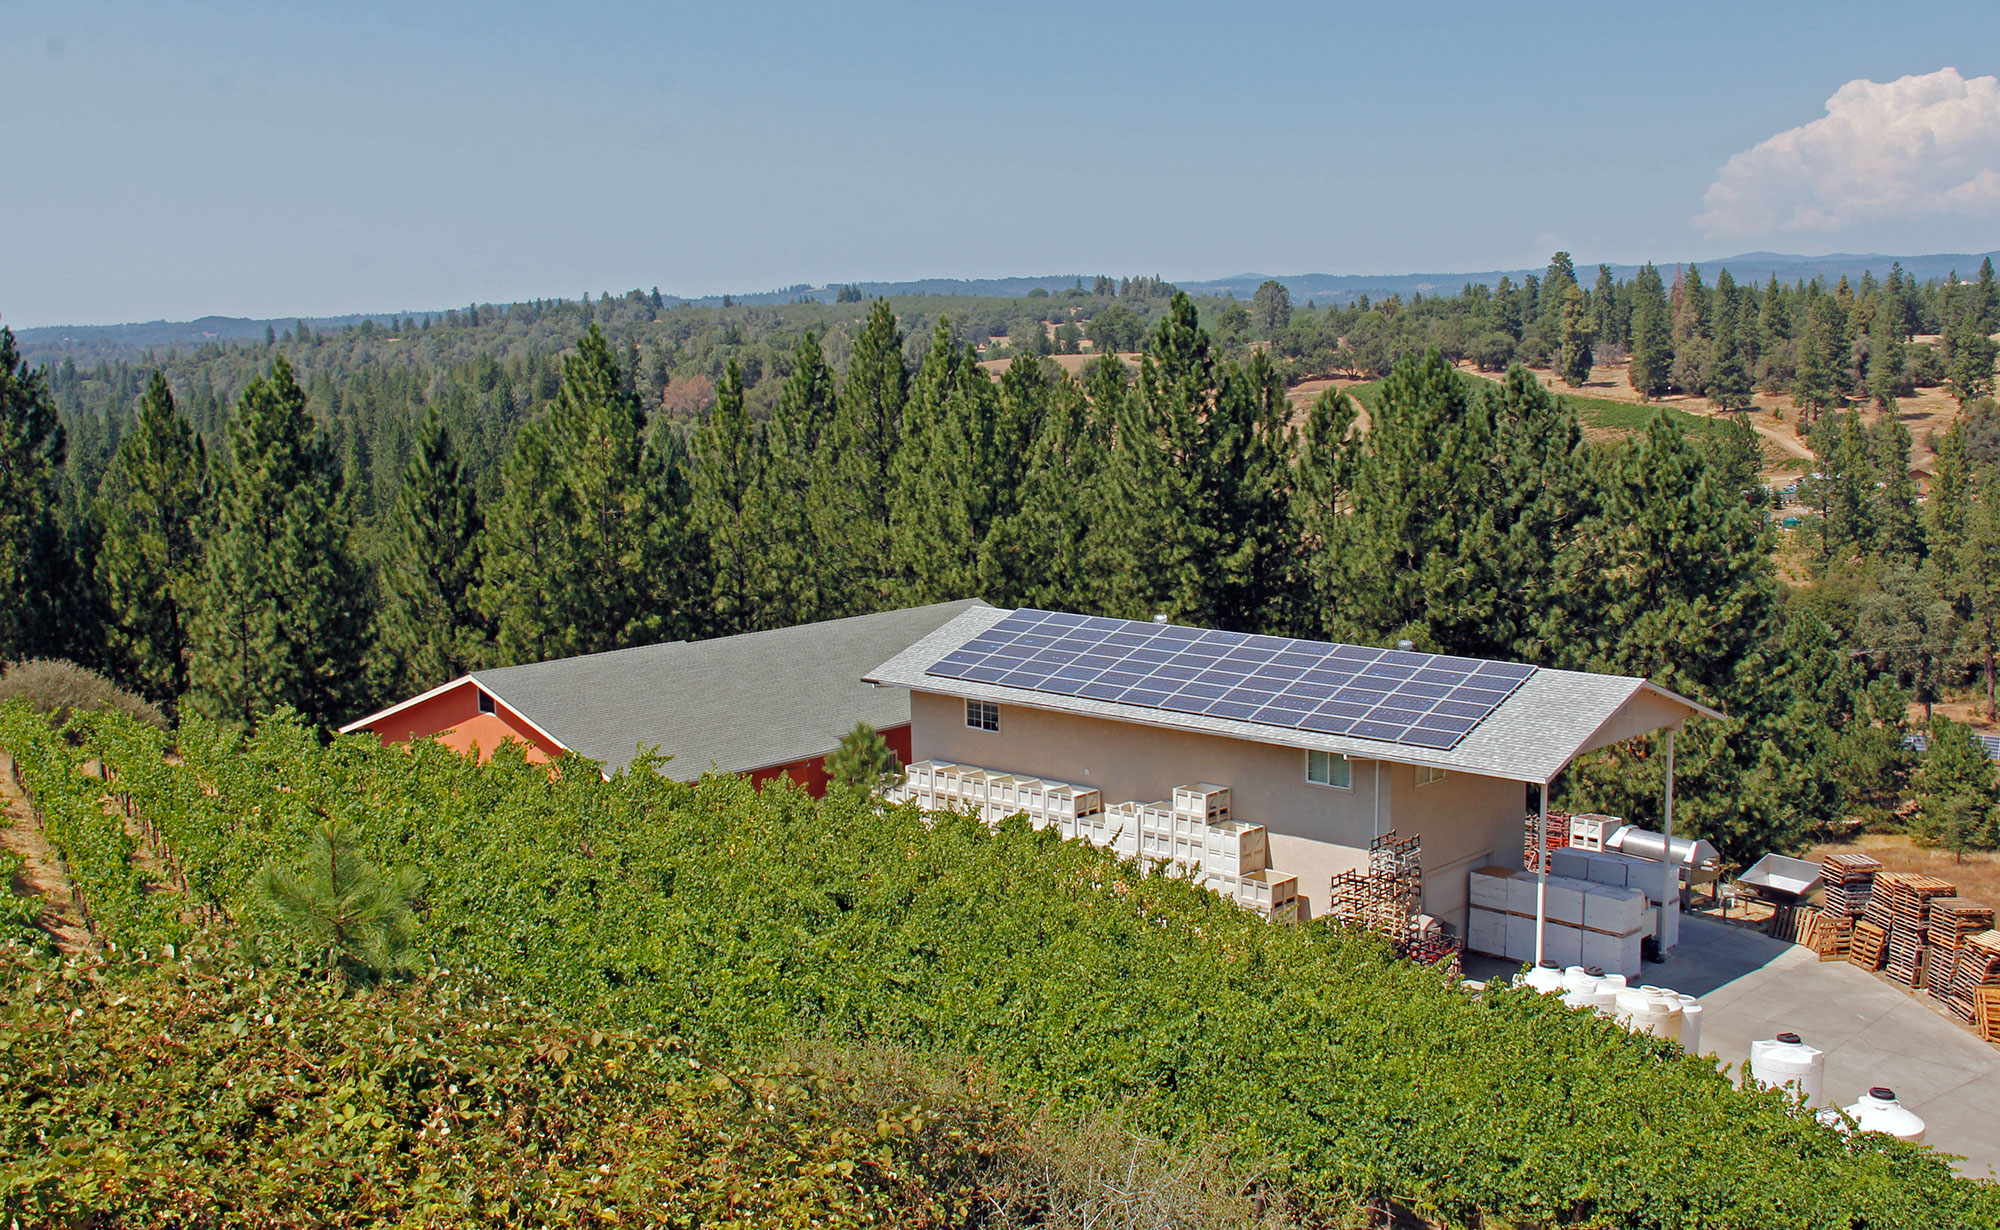 Solar powered winery in the Sierra Foothills